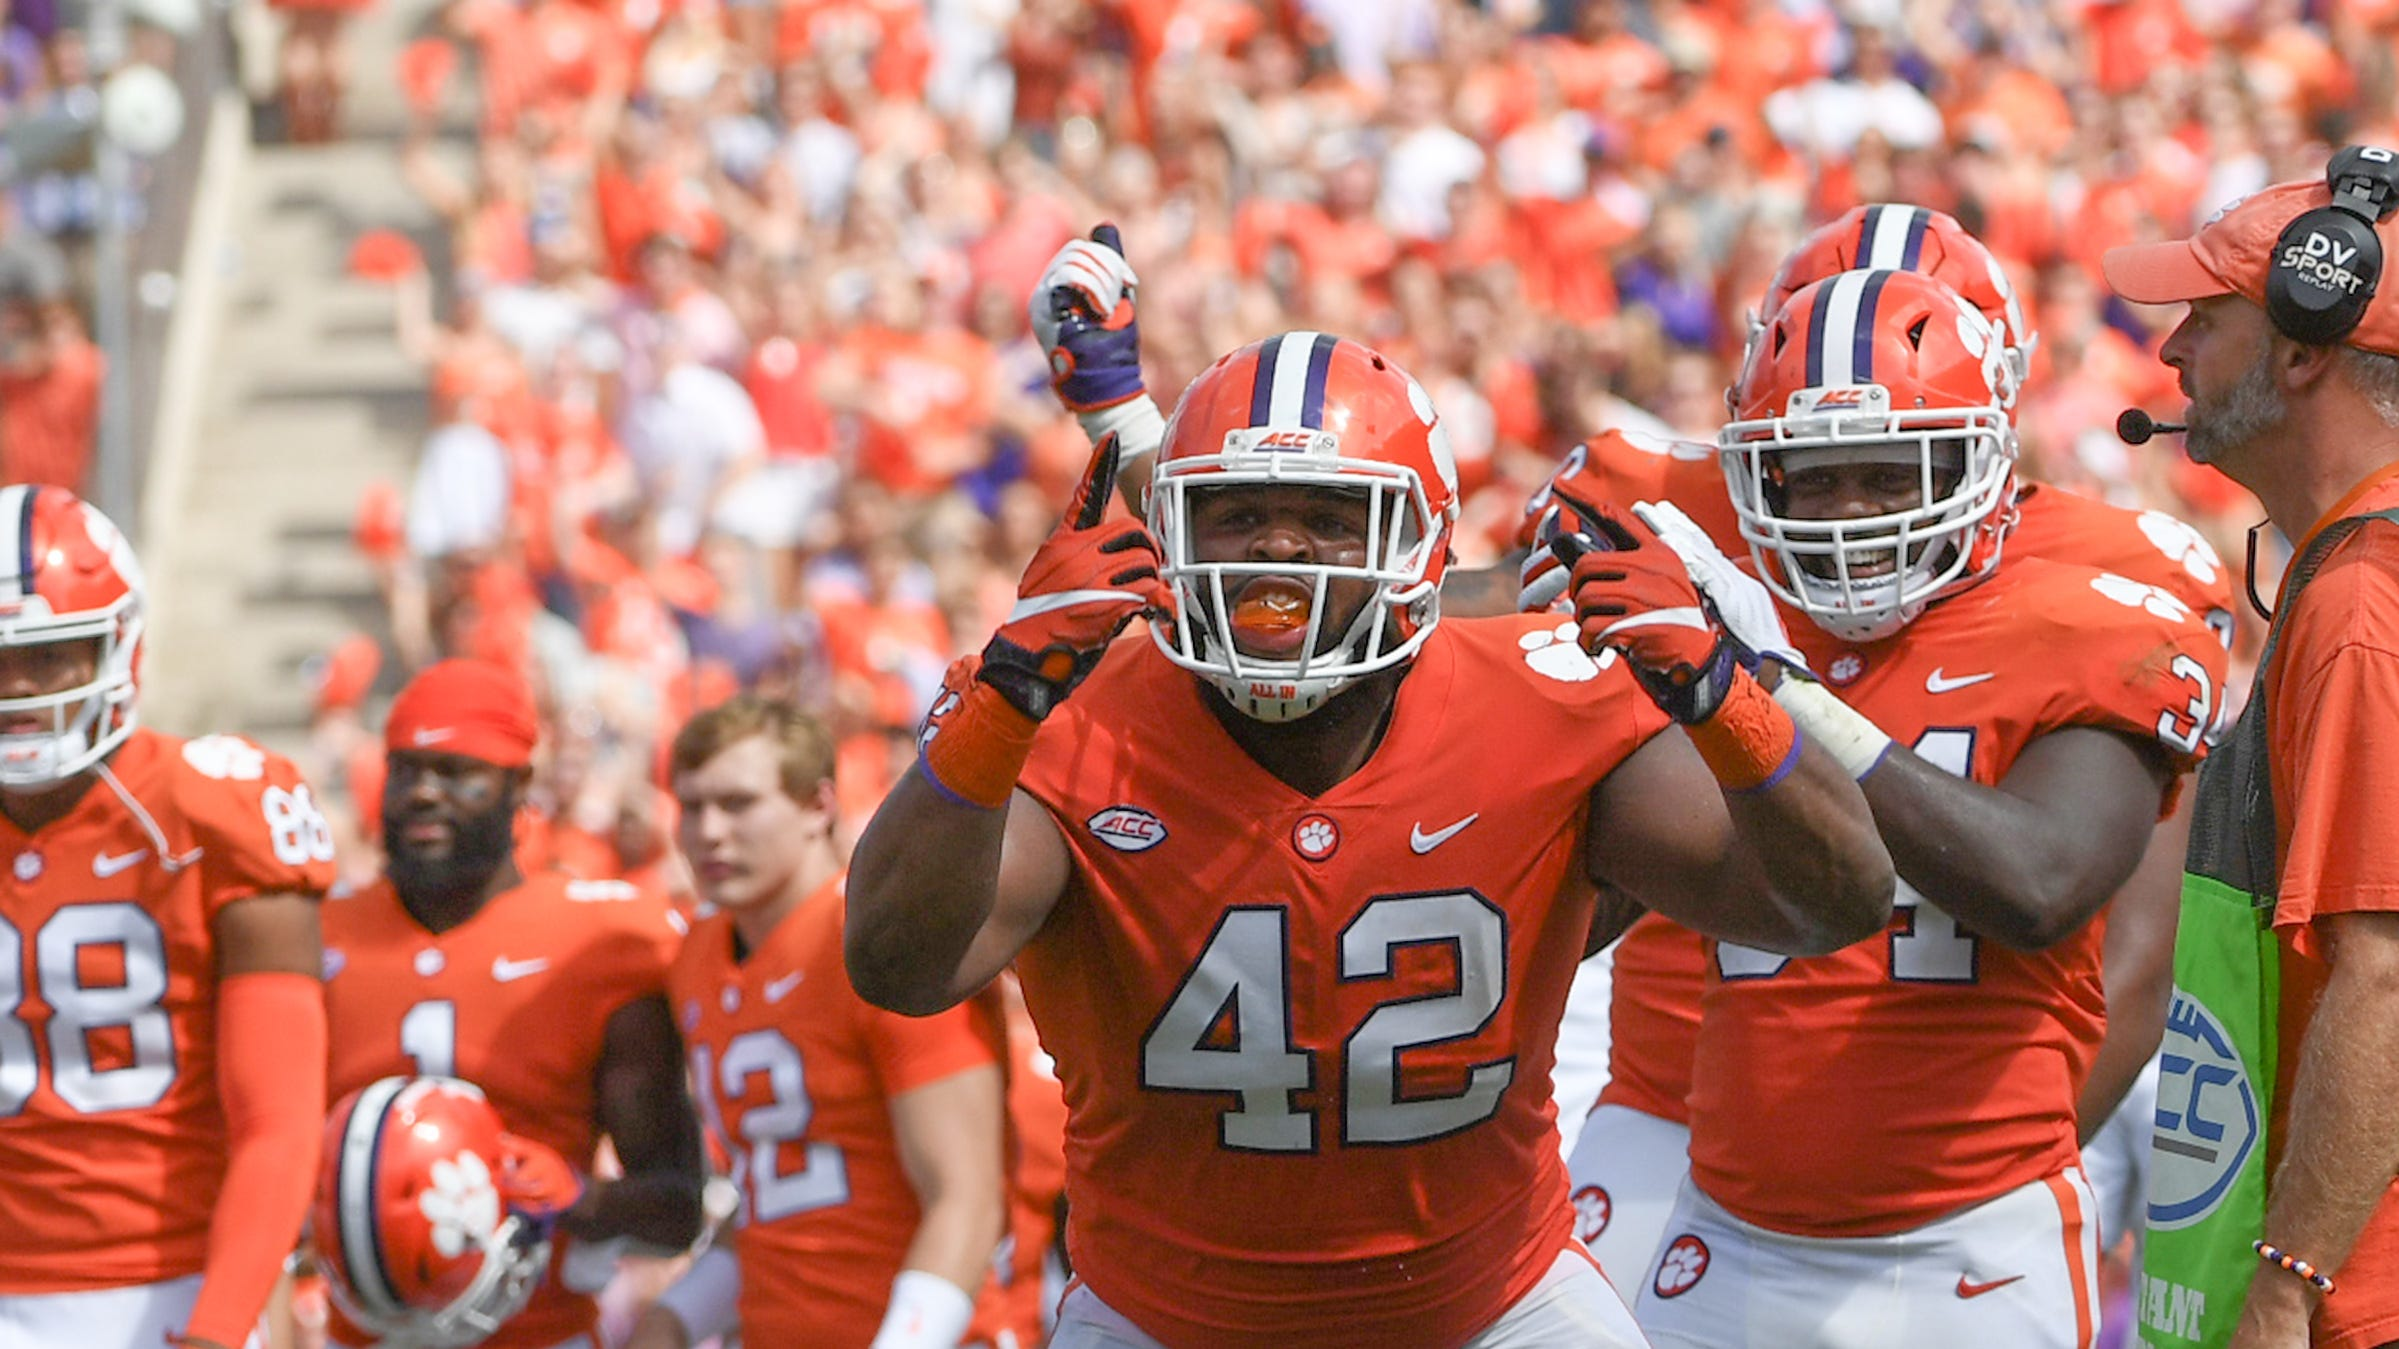 NC State vs. Clemson: Game time, TV channel, where to stream online